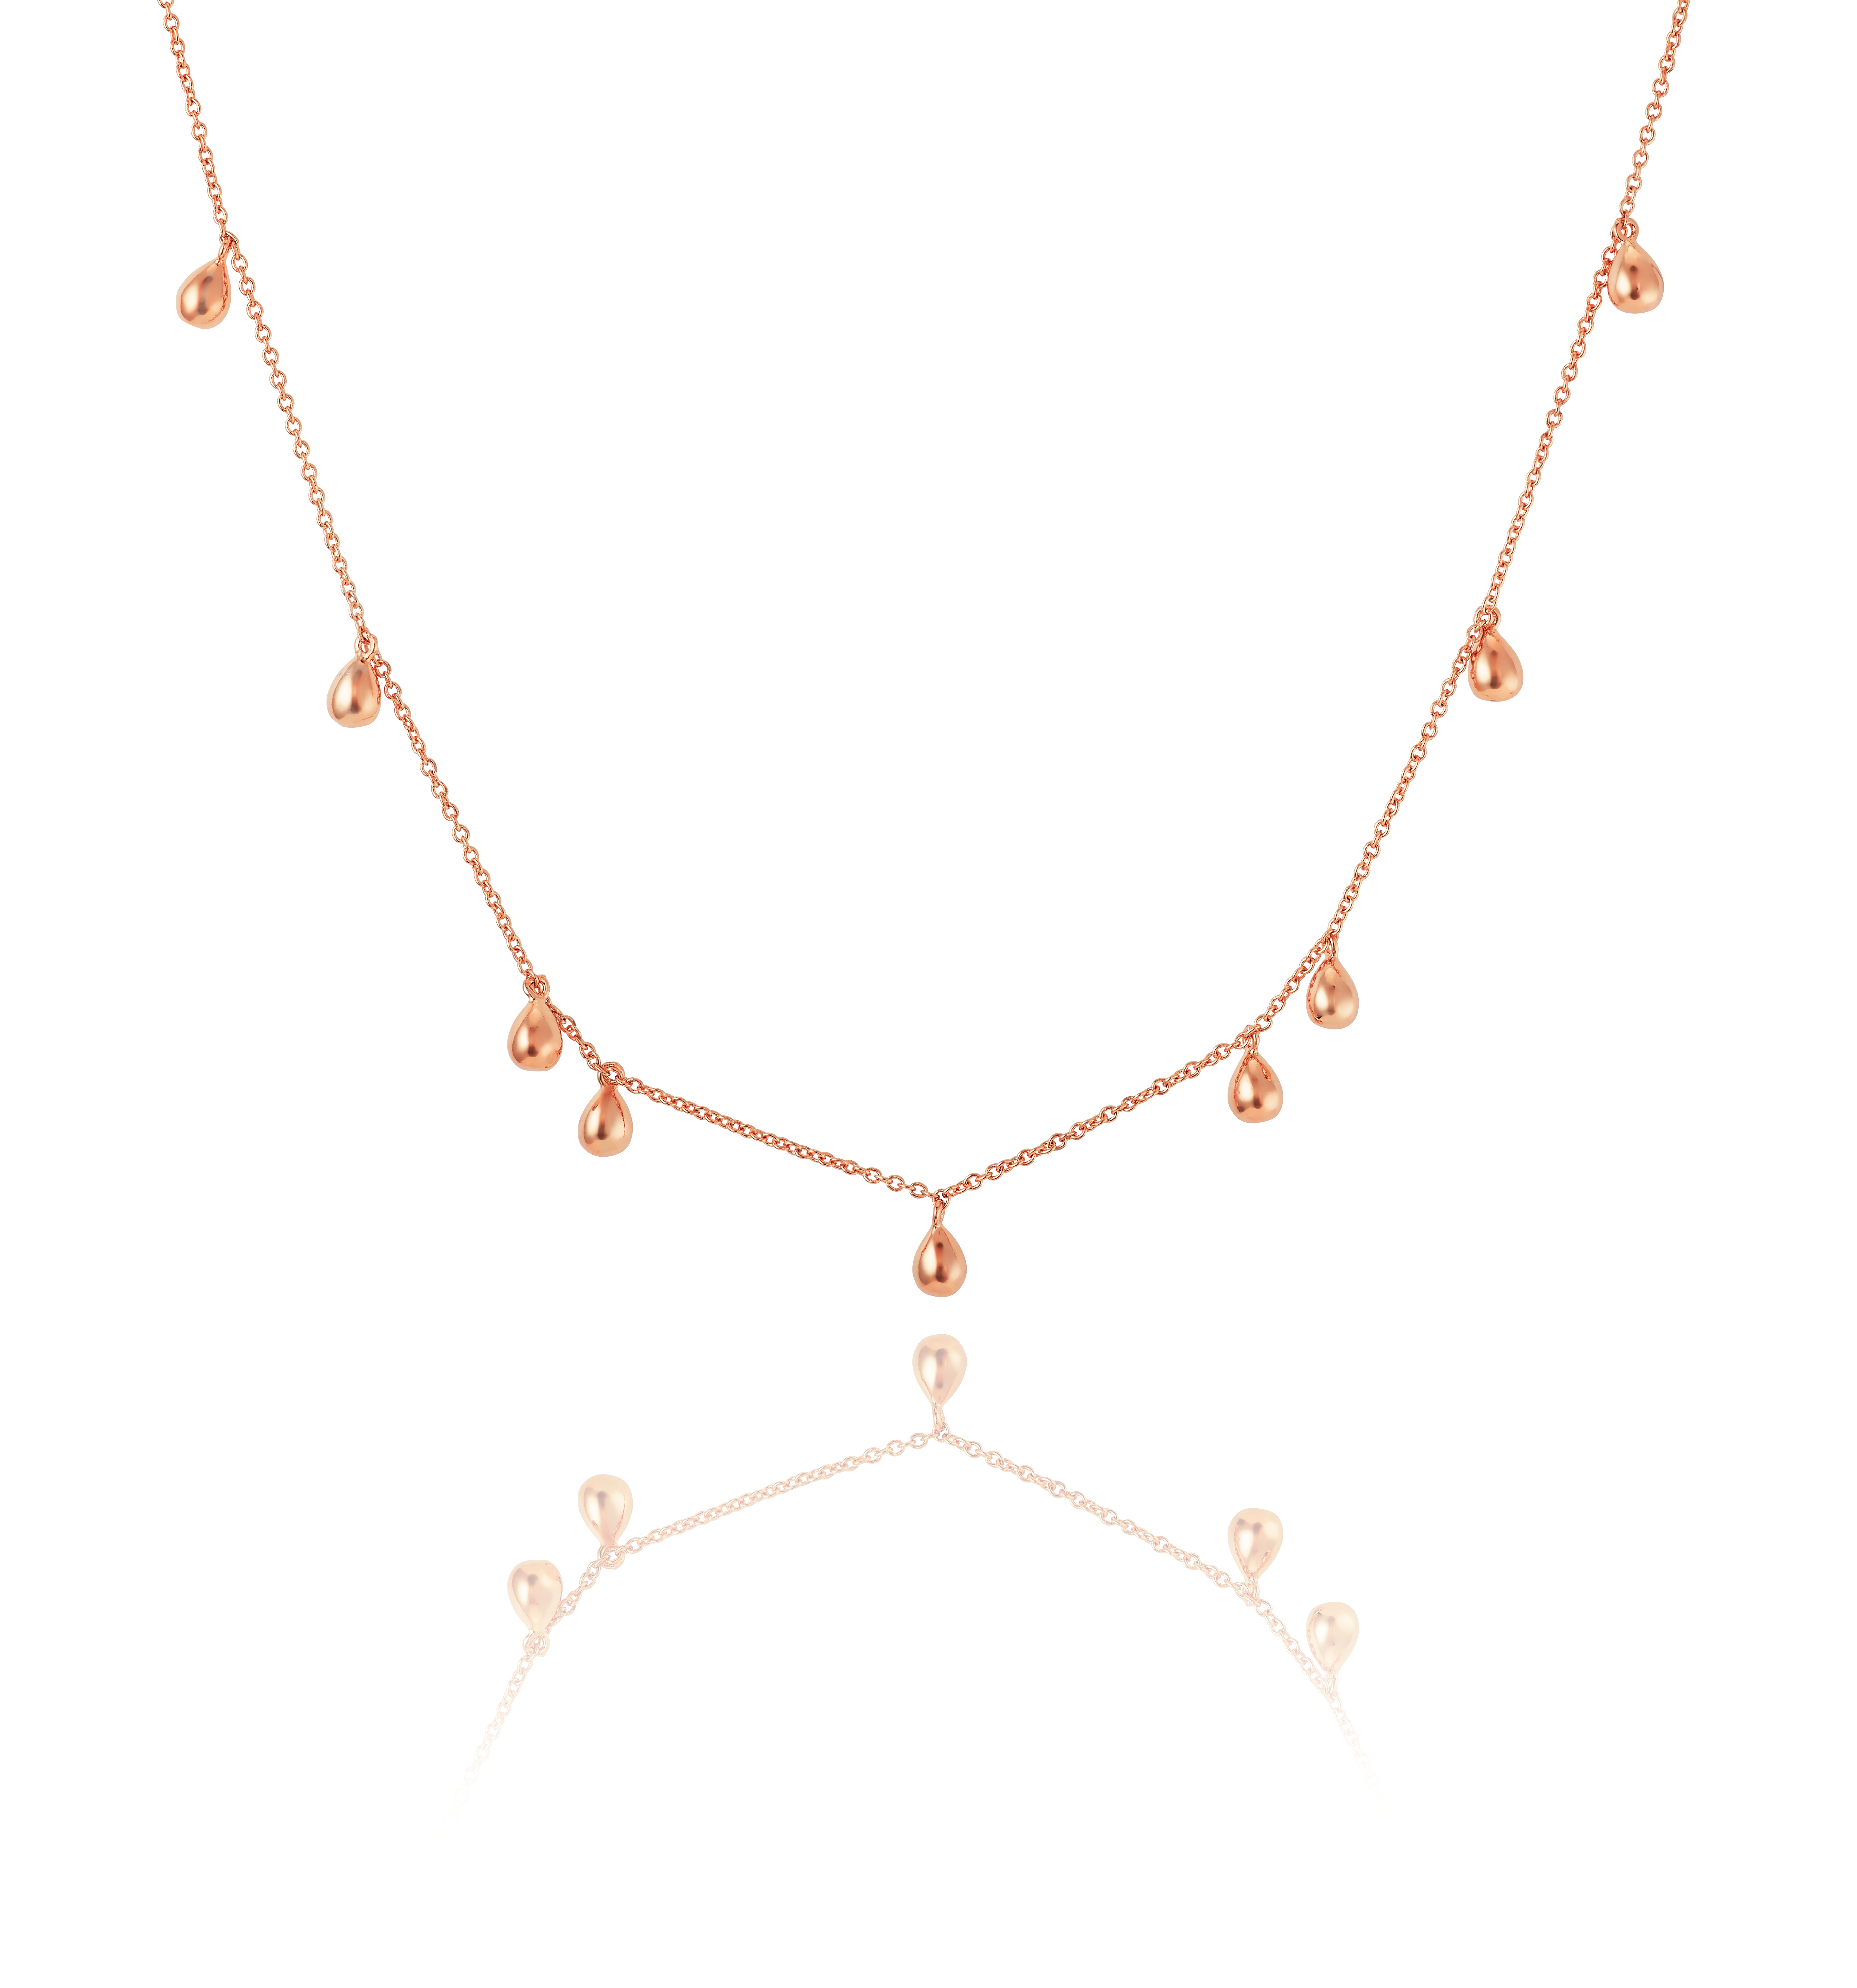 Rose Gold Teardrop Necklace - The Makery Collection 99fe06743